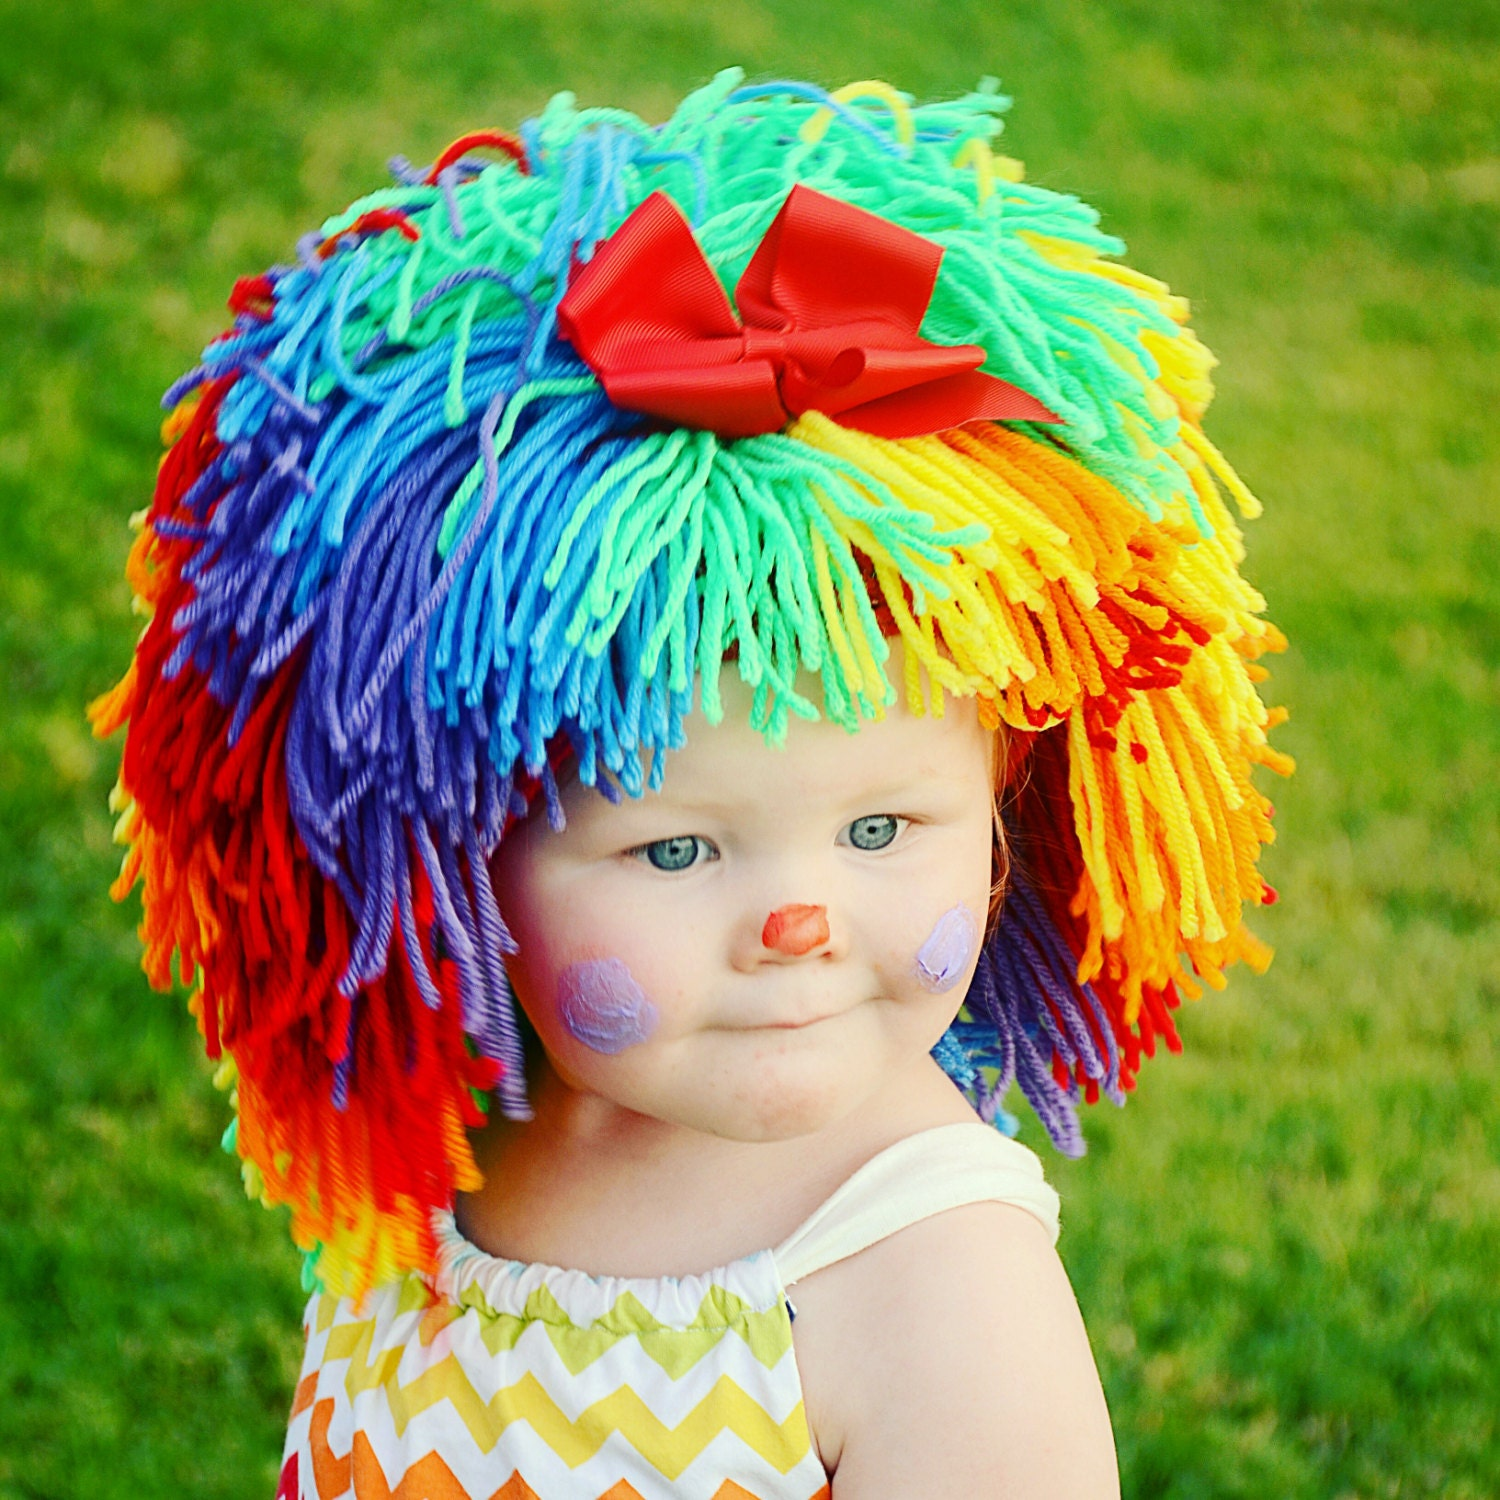 Clown Costume Halloween Costumes Baby Hat Baby Girl Clown Wig